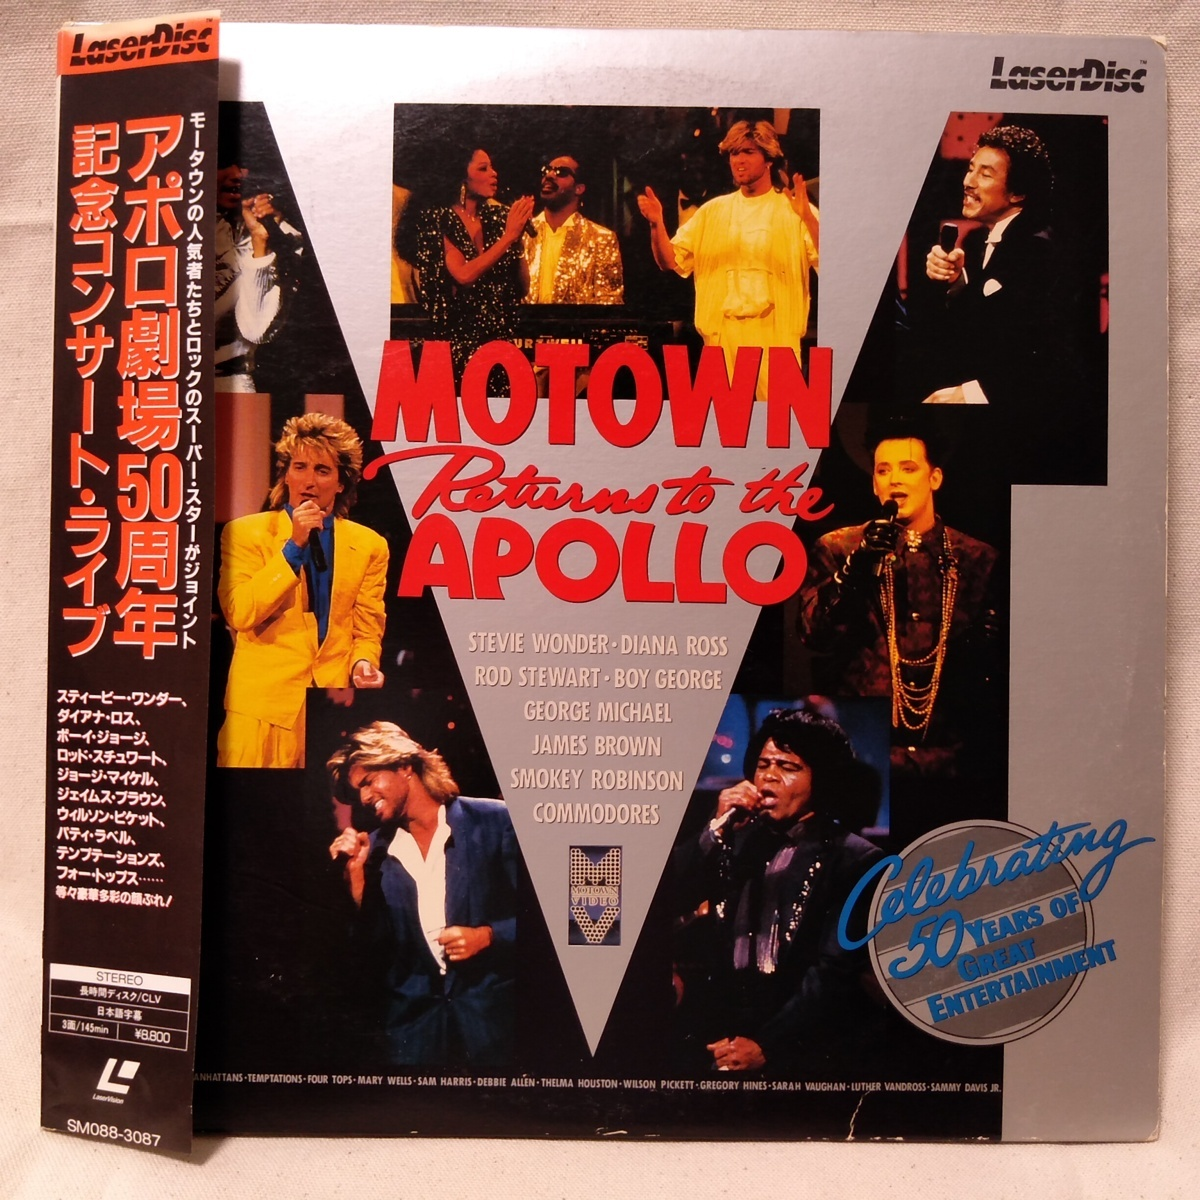 LD MOTOWN RETURN TO THE APOLLO ★ STEVIE WONDER / DIANA ROSS / JAMES BROWN / COMMODORES etc ★レーザーディスク2枚組 [5691RP_画像1